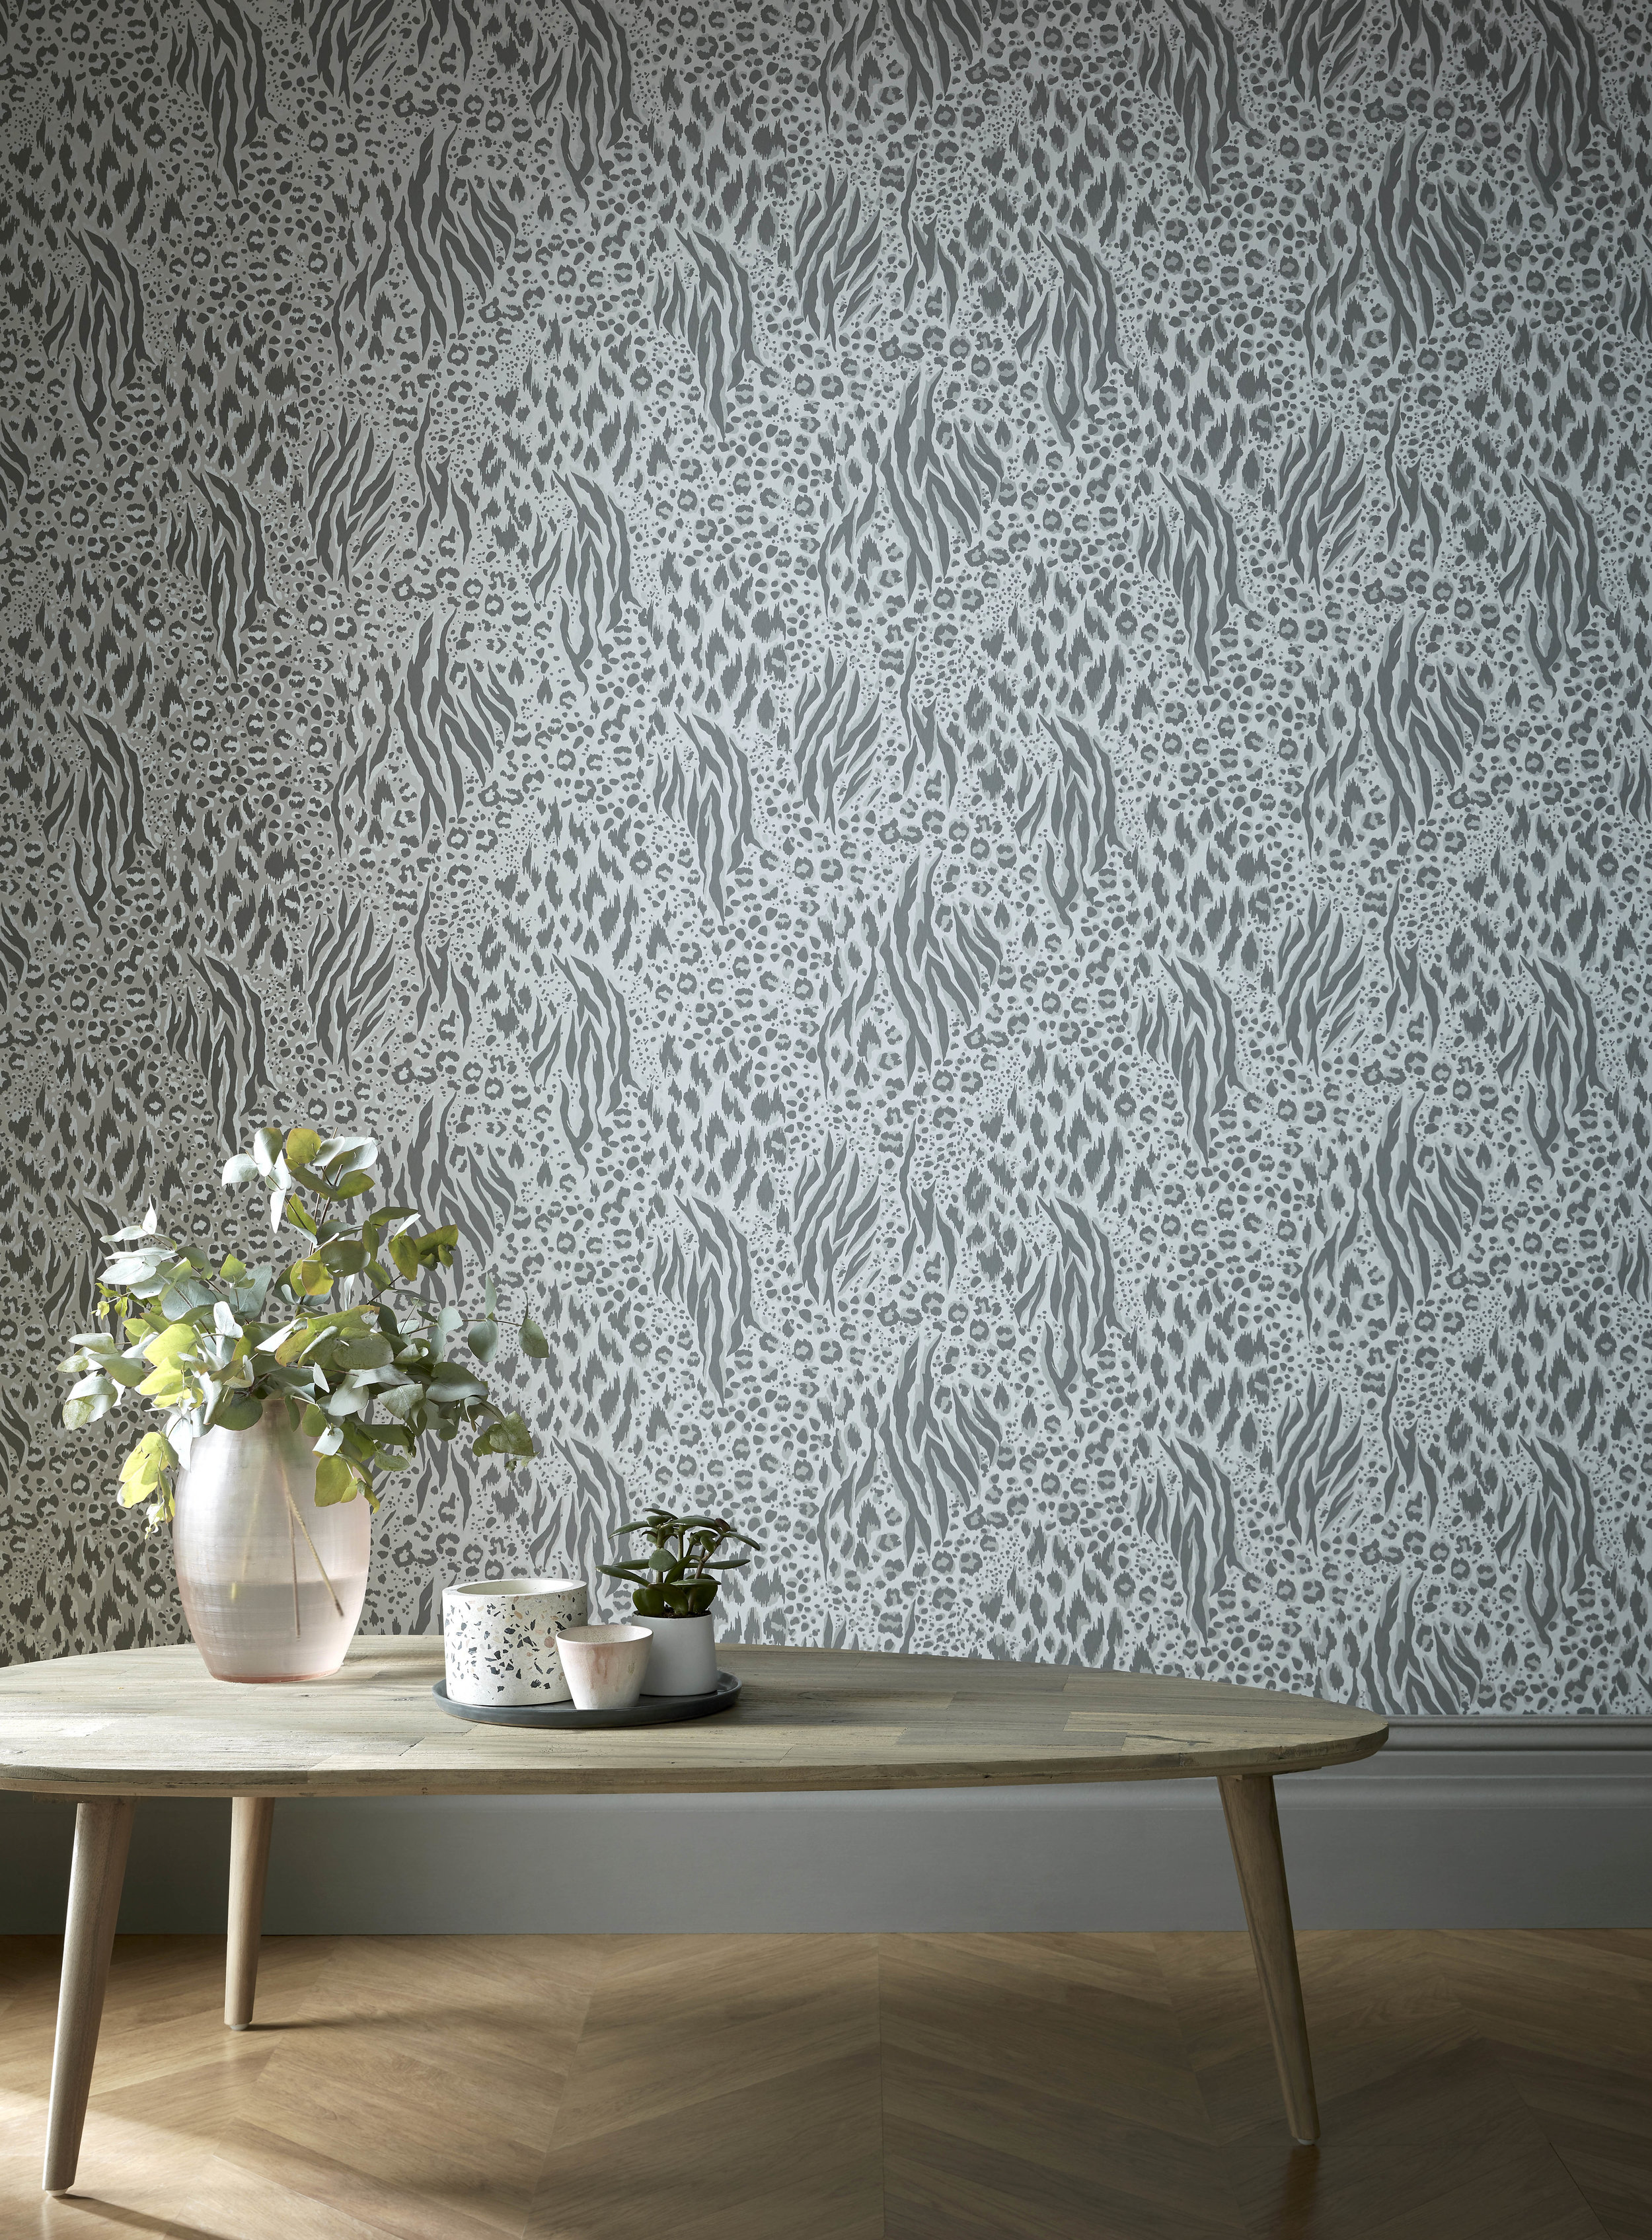 Accessorize Savannah Wallpaper - Grey Silver copy.jpg